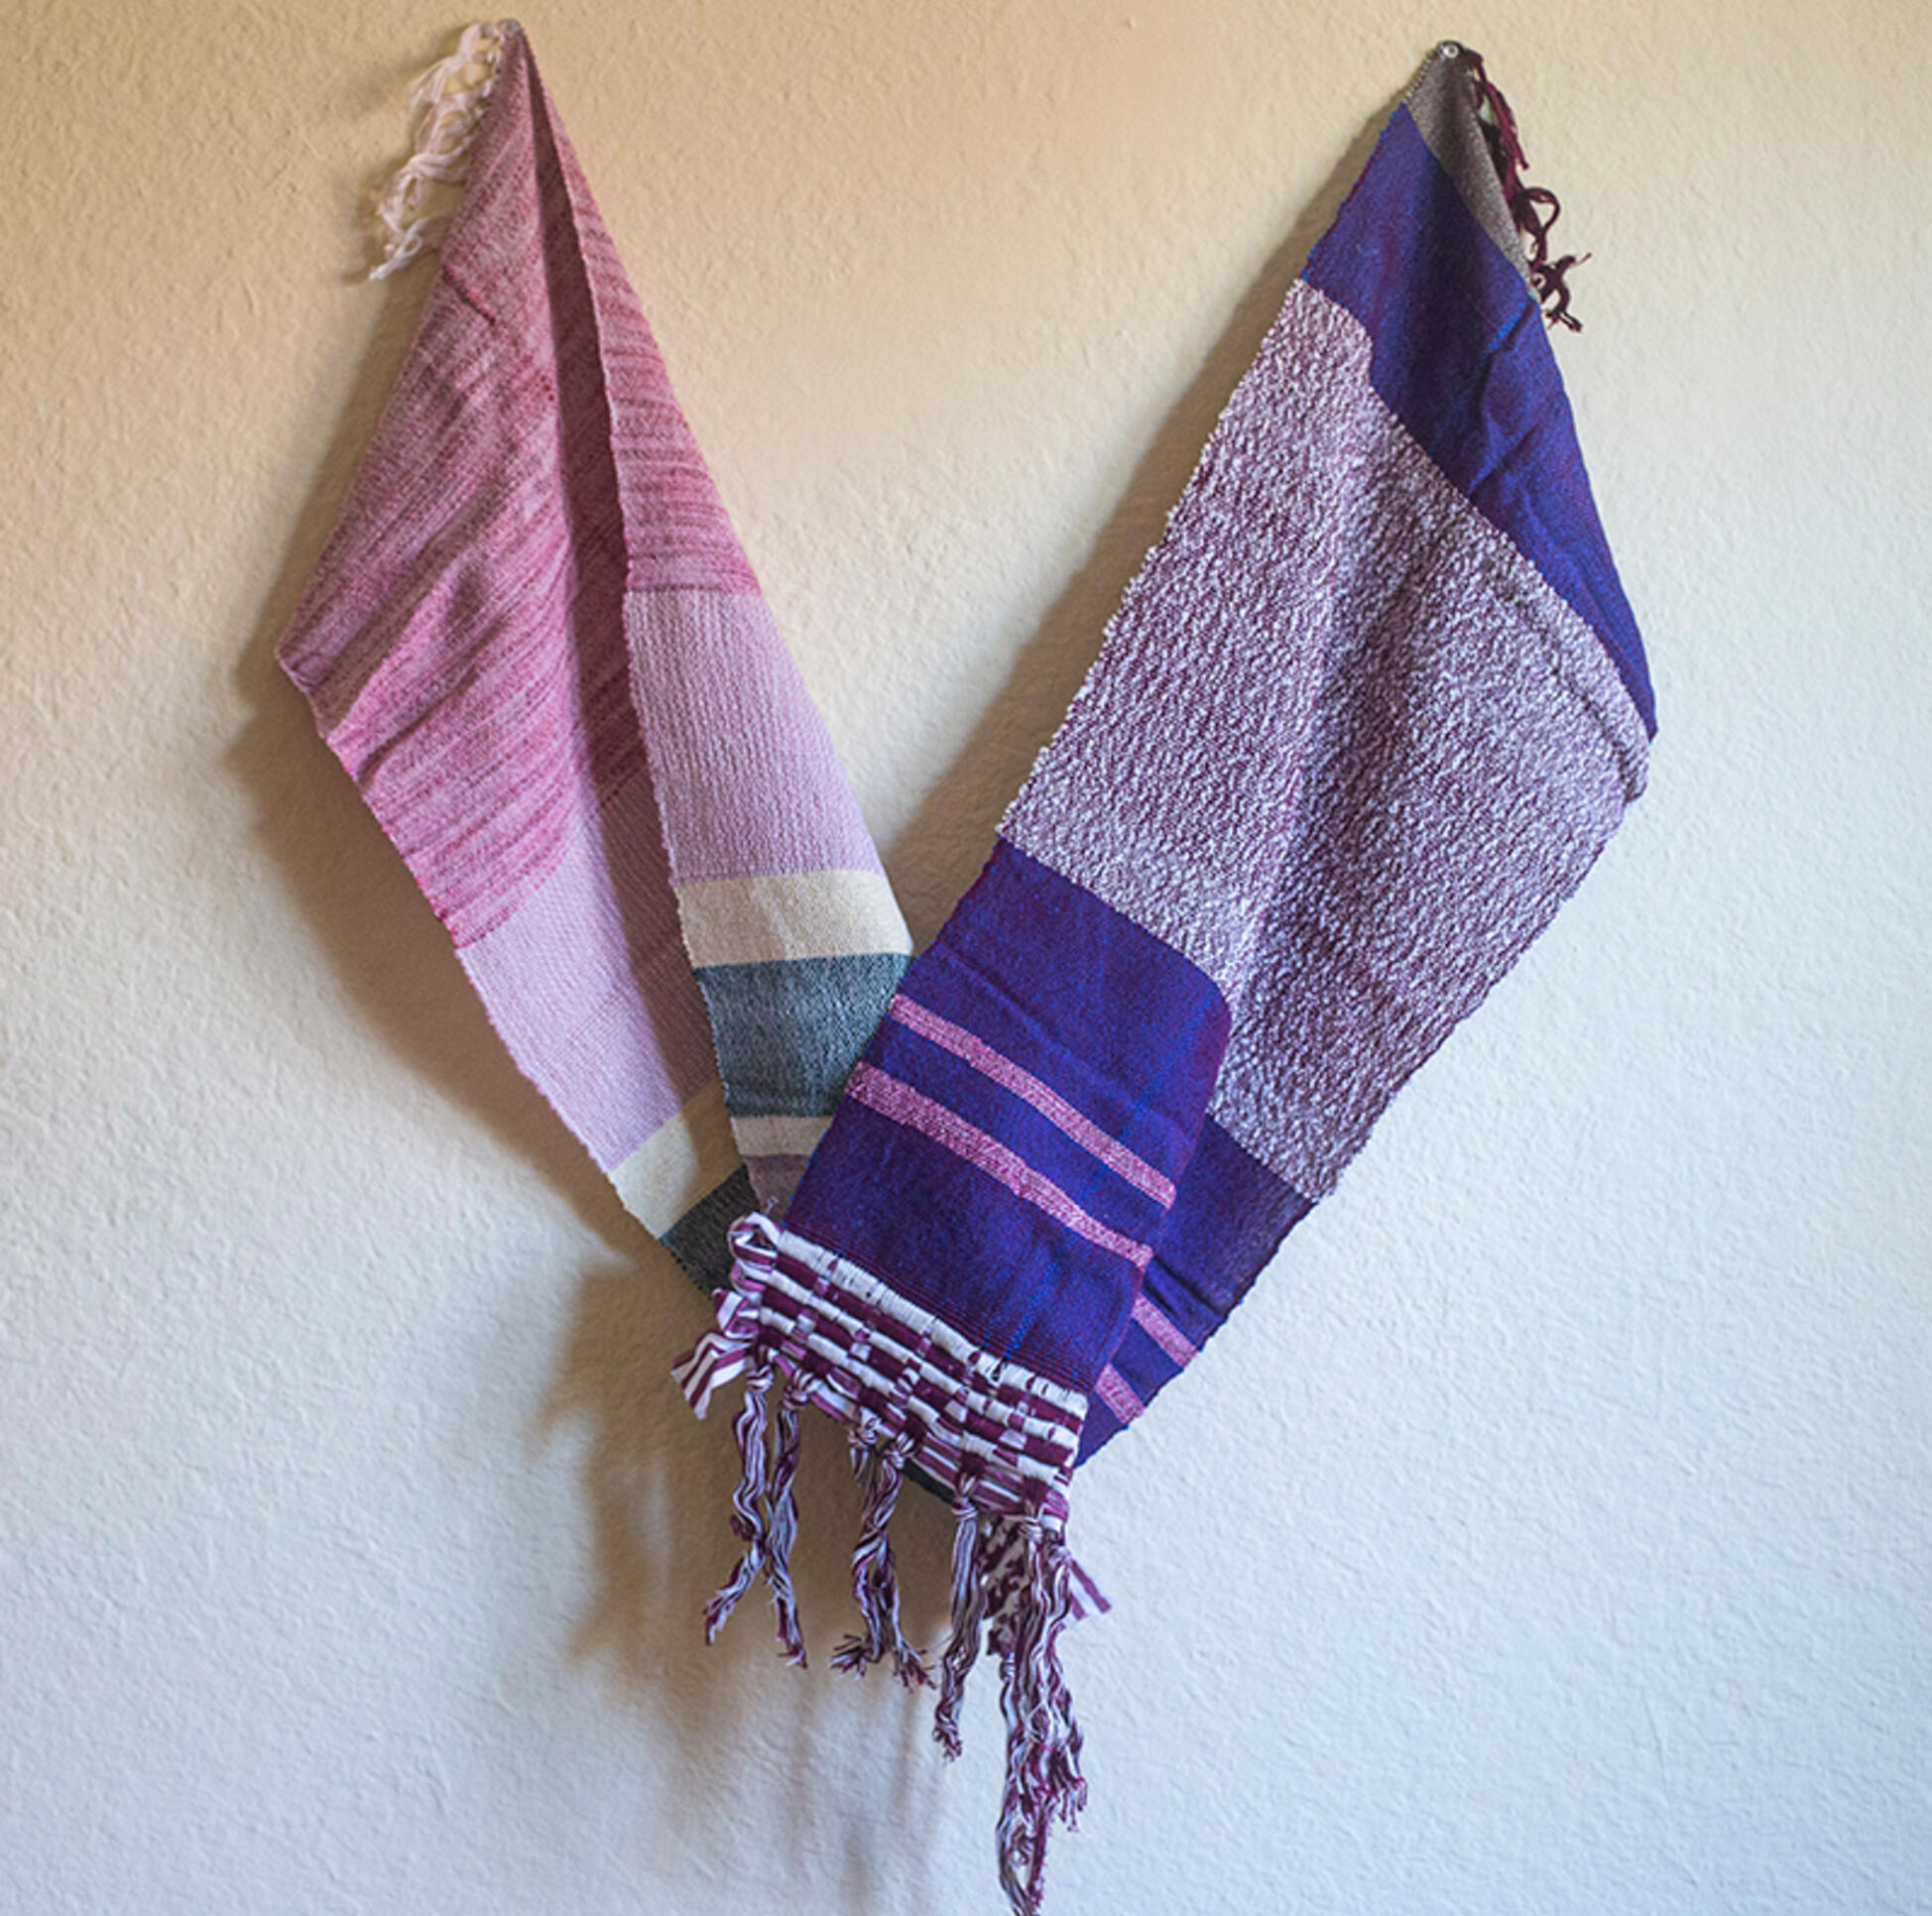 Installation of scarves weaving together ; Kehayr Brown-Ransaw